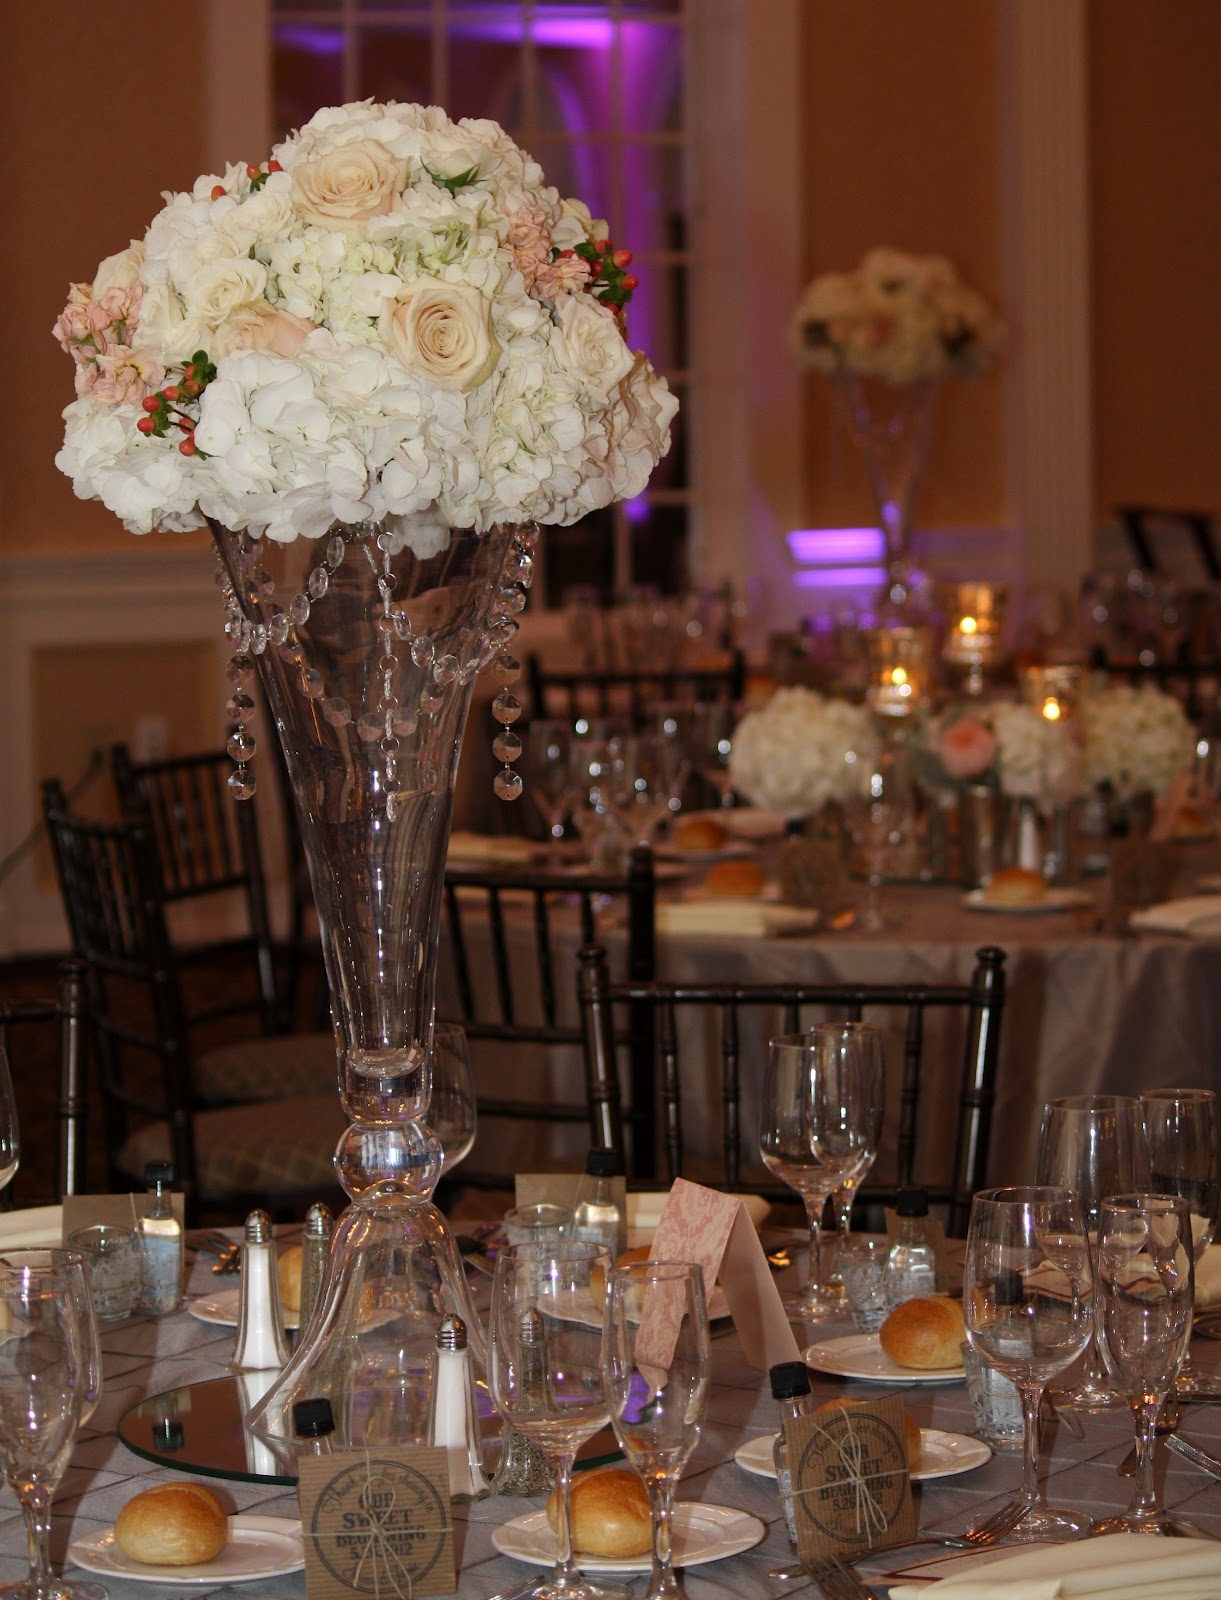 Splendid stems floral designs wedding flowers